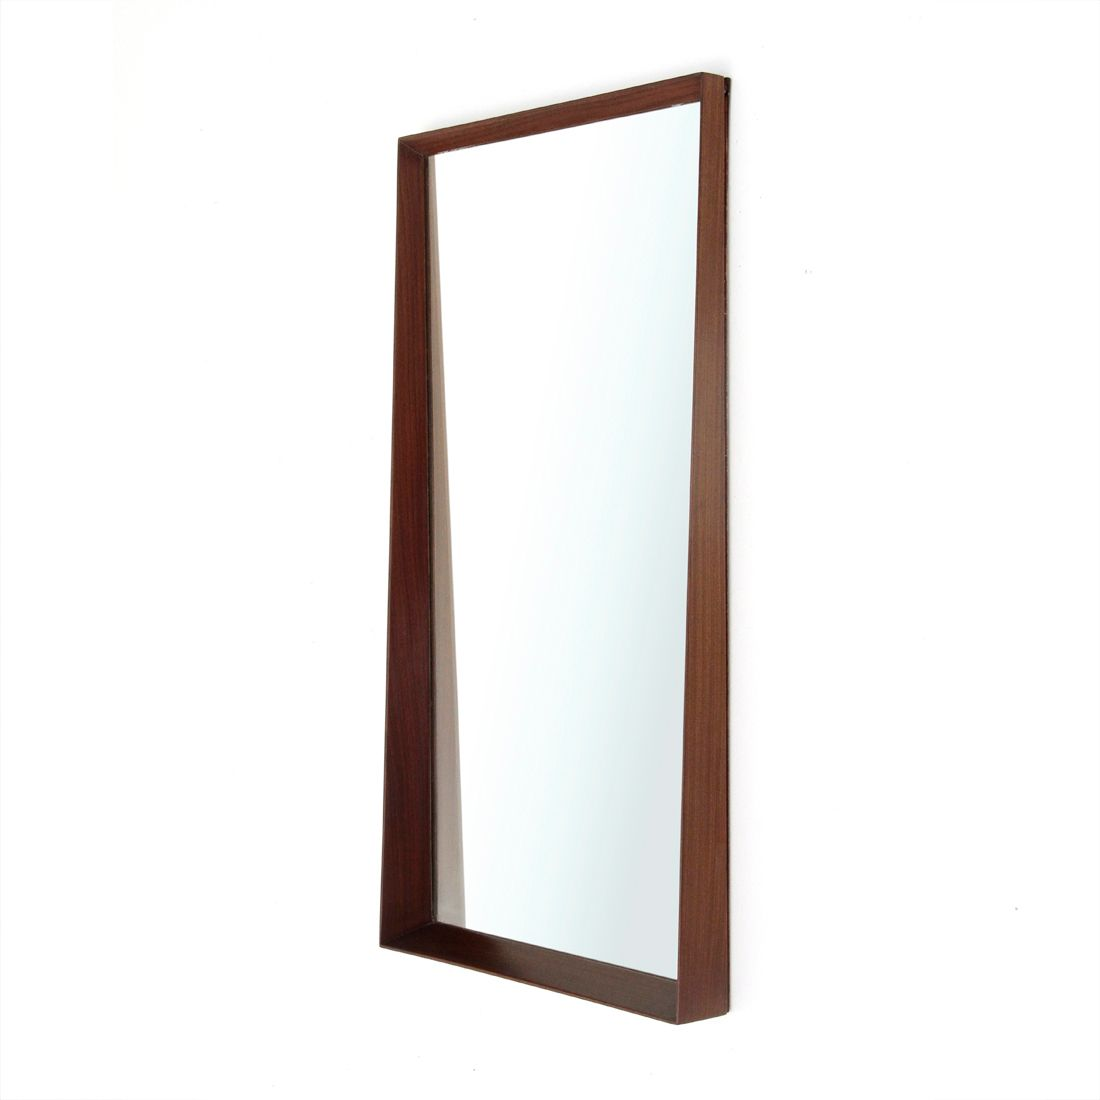 Italian Mirror with Teak Frame, 1950s for sale at Pamono